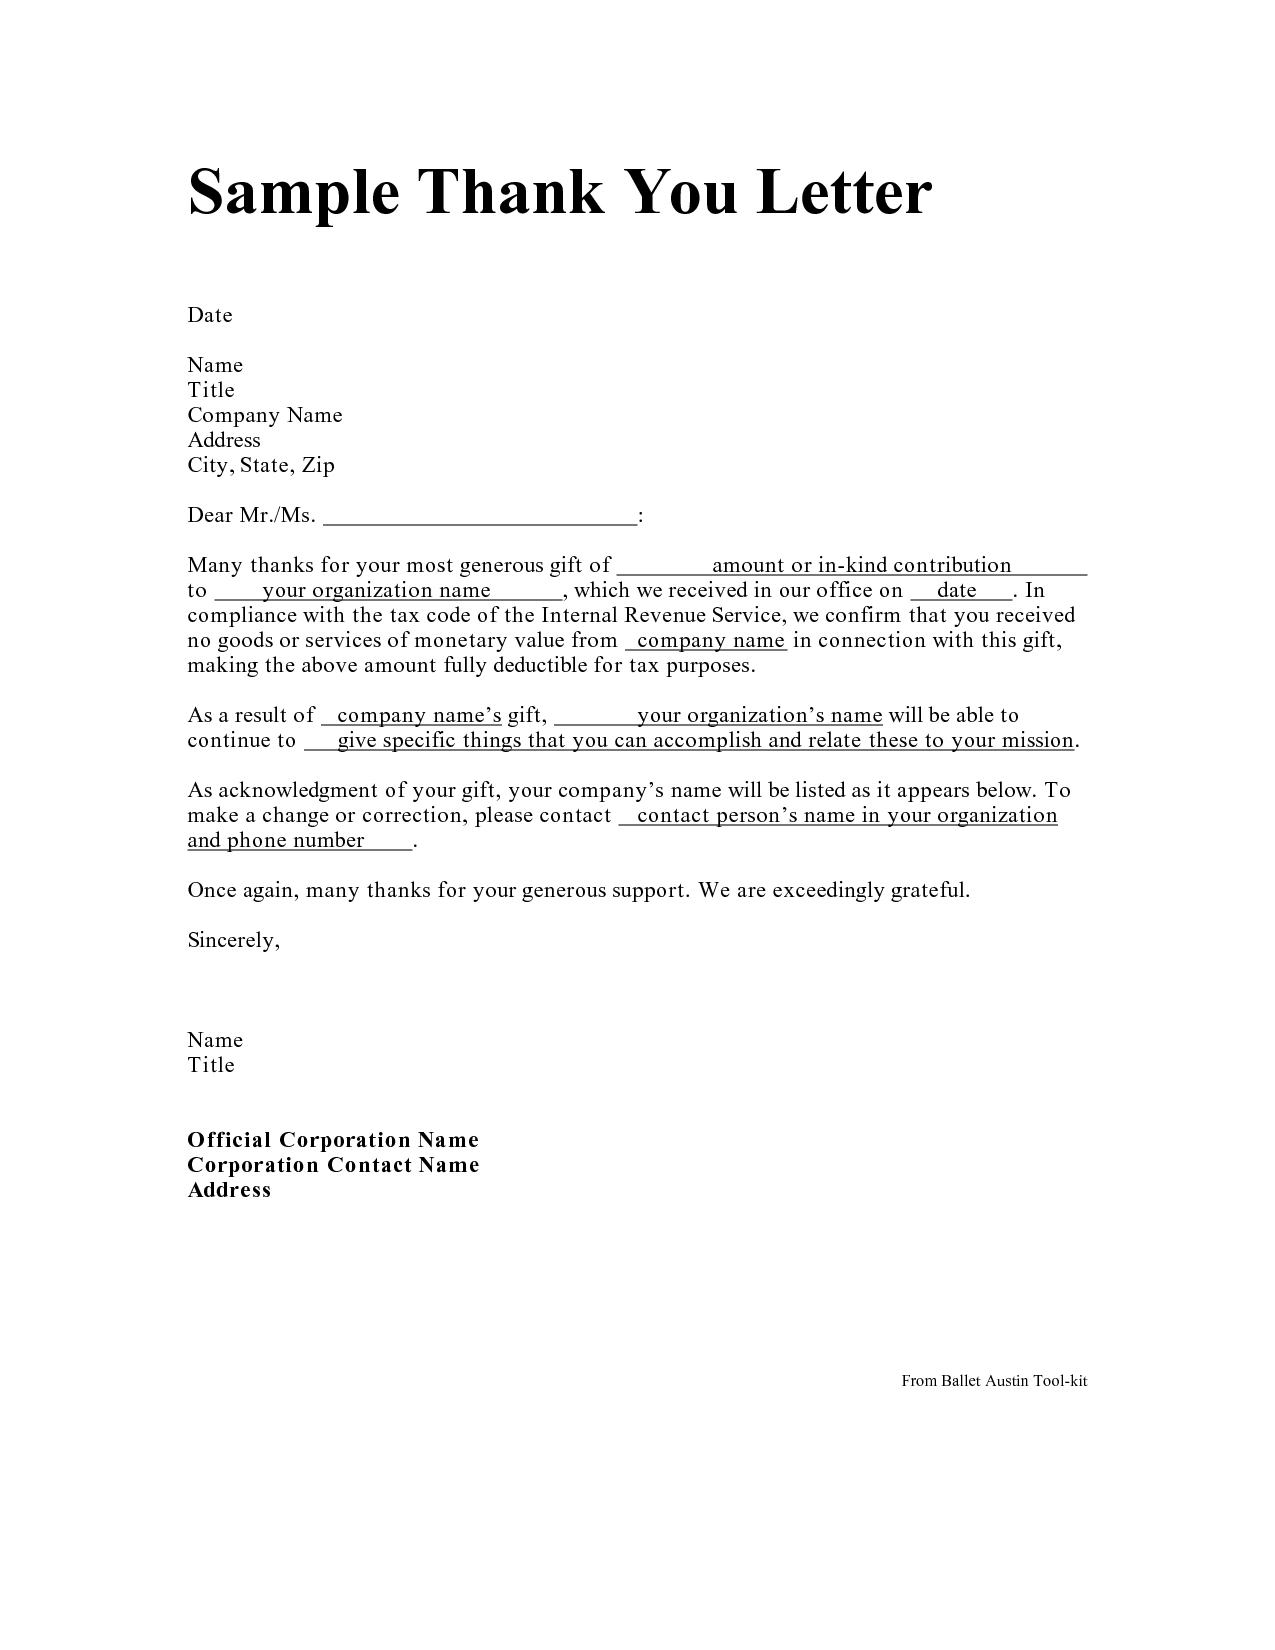 Missionary Prayer Letter Template - Personal Thank You Letter Personal Thank You Letter Samples